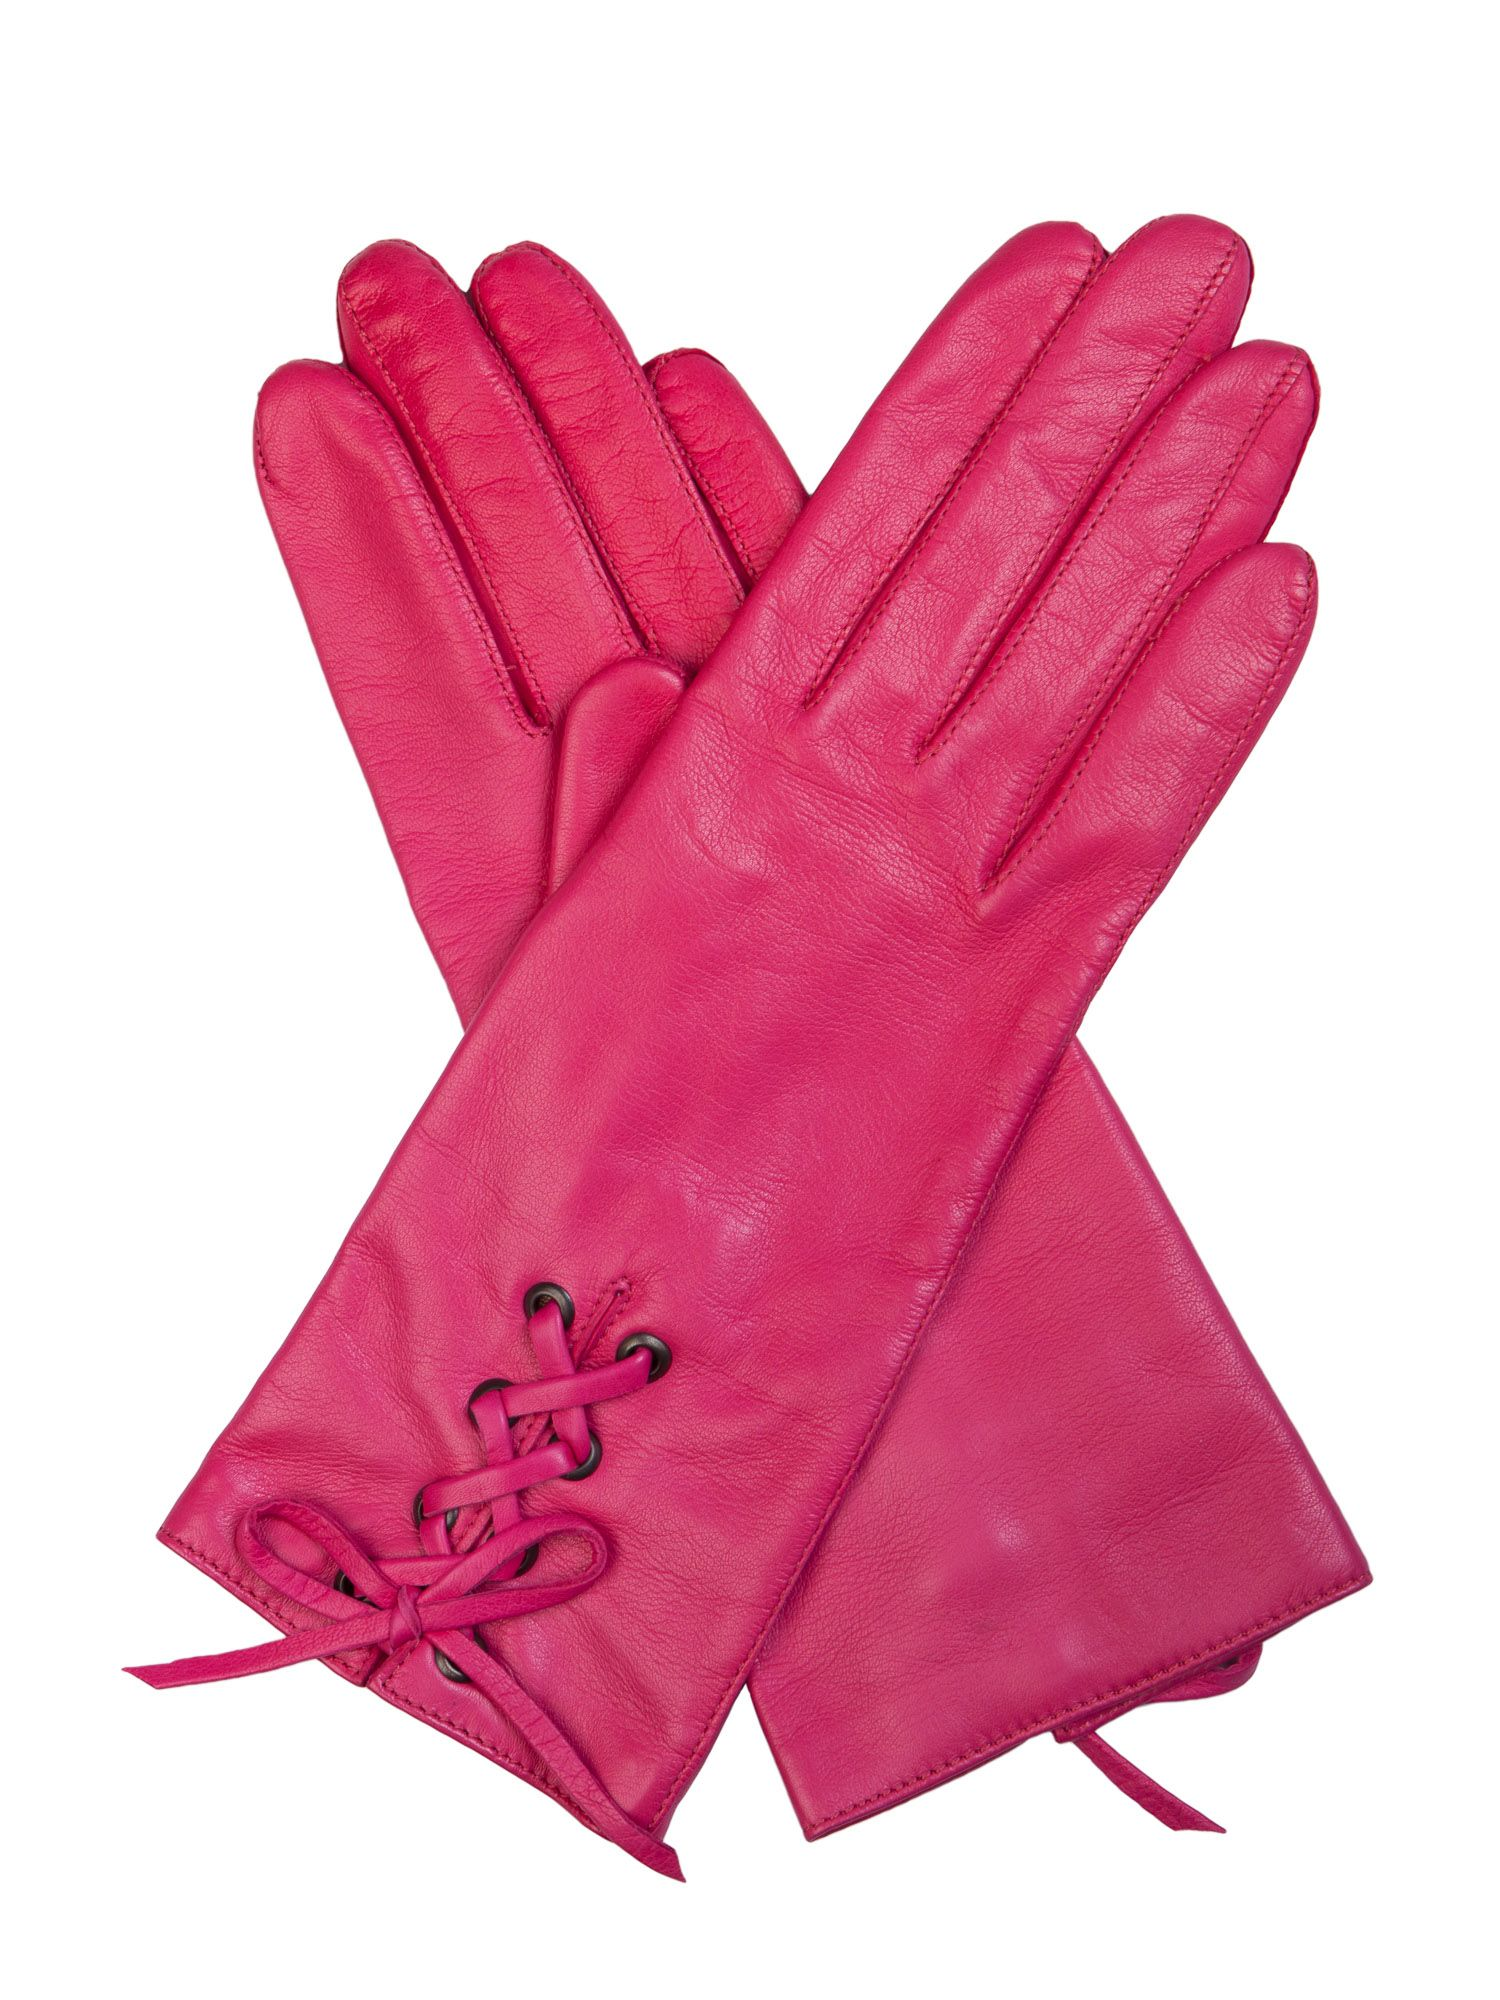 Ladies leather gloves large - Vintage Style Gloves Cornelia James Paloma Leather Gloves 69 00 At Vintagedancer Com